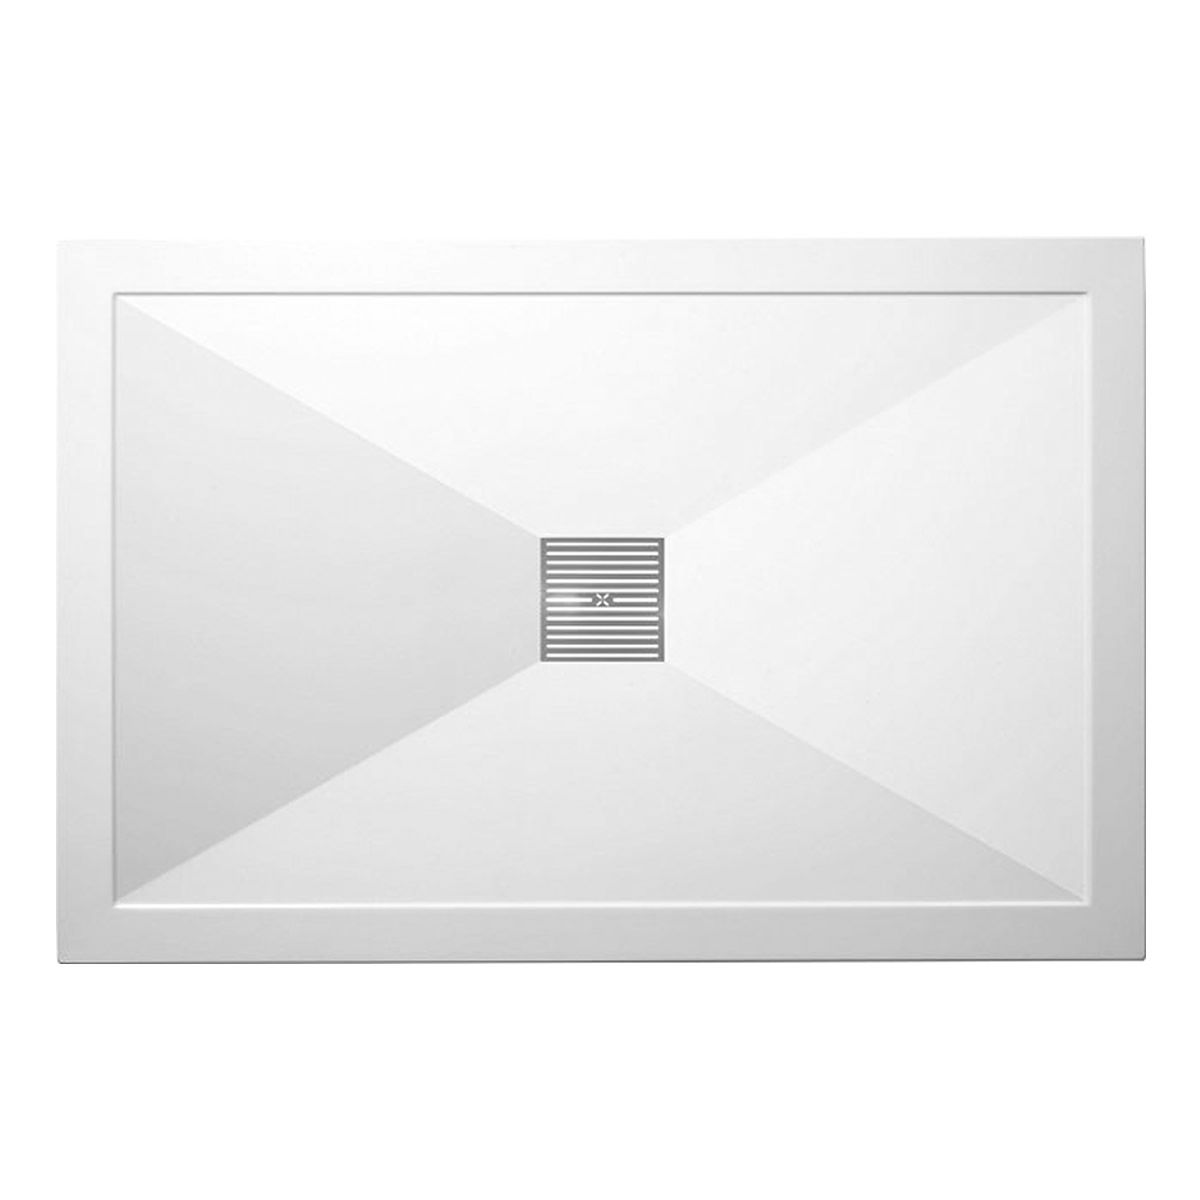 Crosswater (Simpsons) 25mm Stone Resin Rectangular Shower Tray with waste